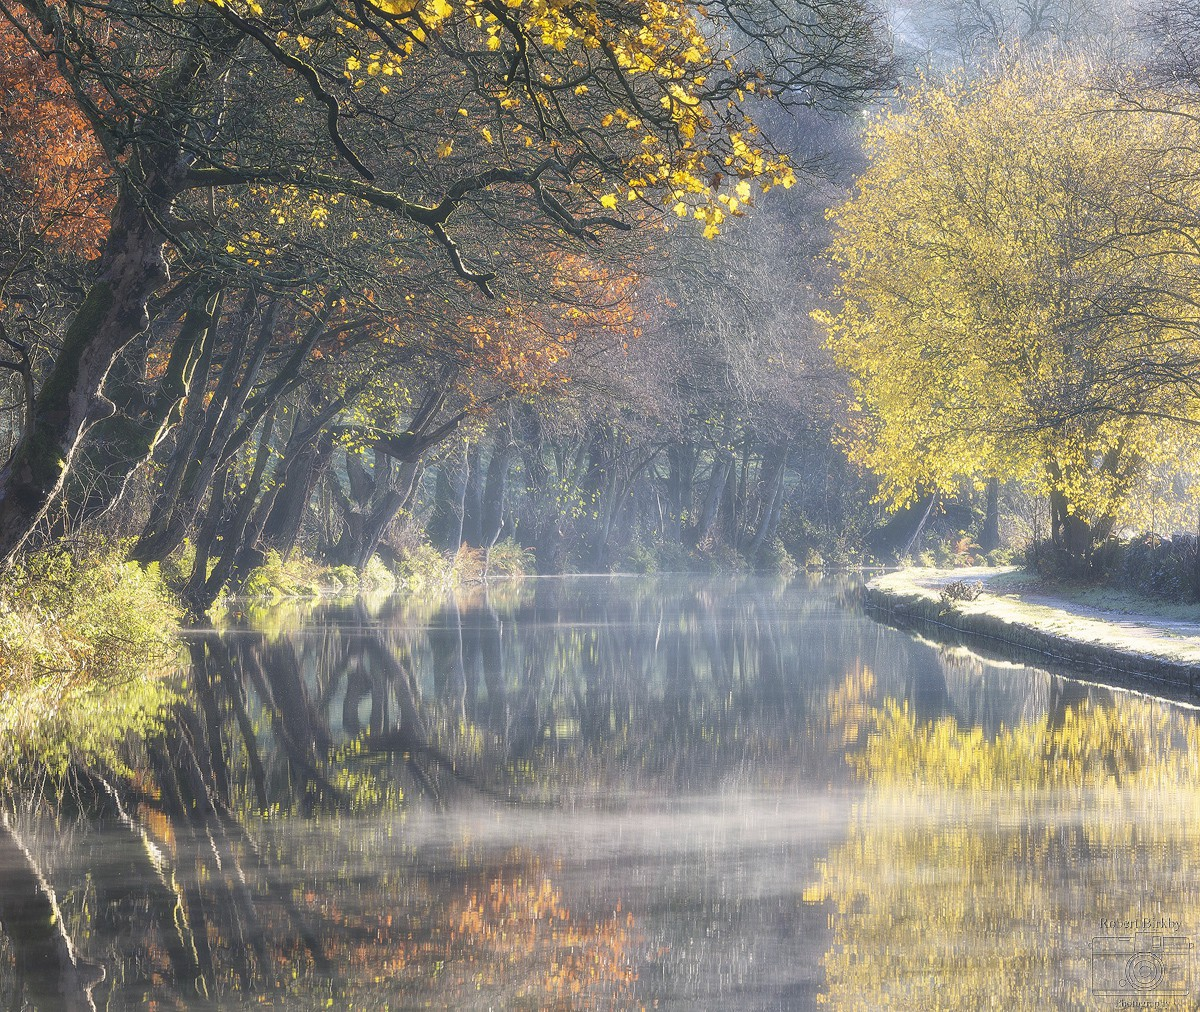 Soft autumn light - Calderdale Landscapes